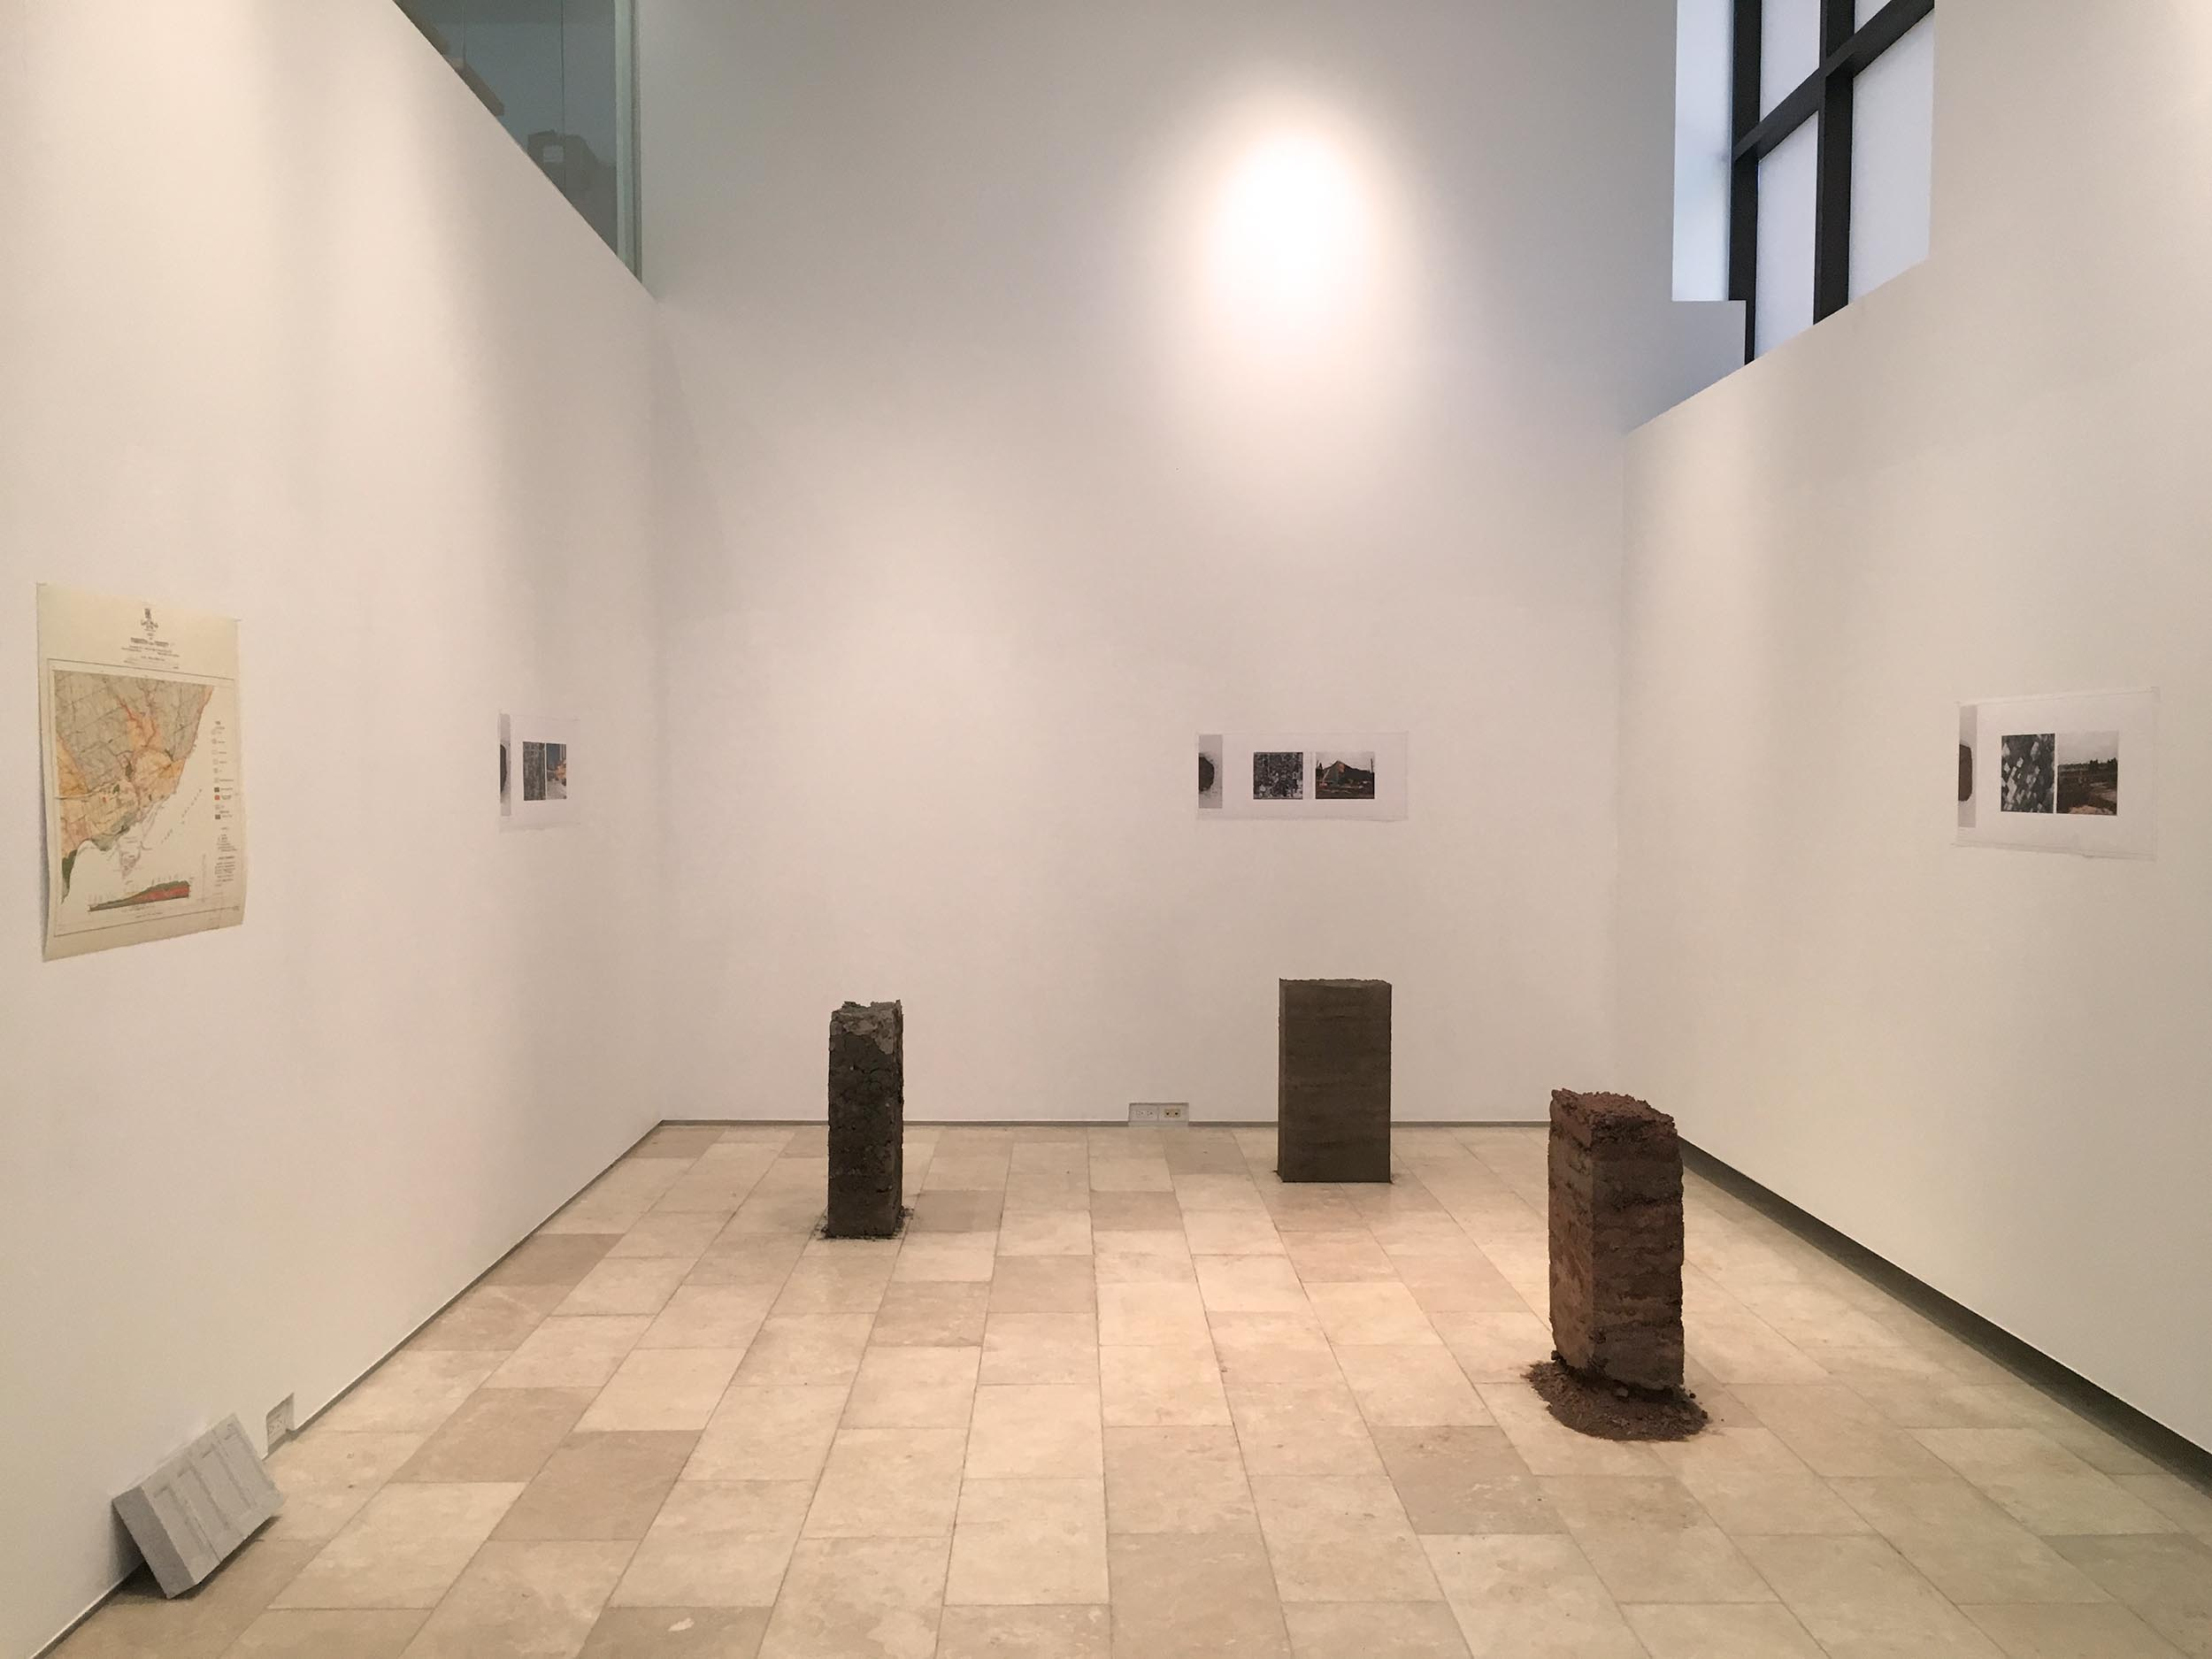 From Soil to Site  Installation view  2017